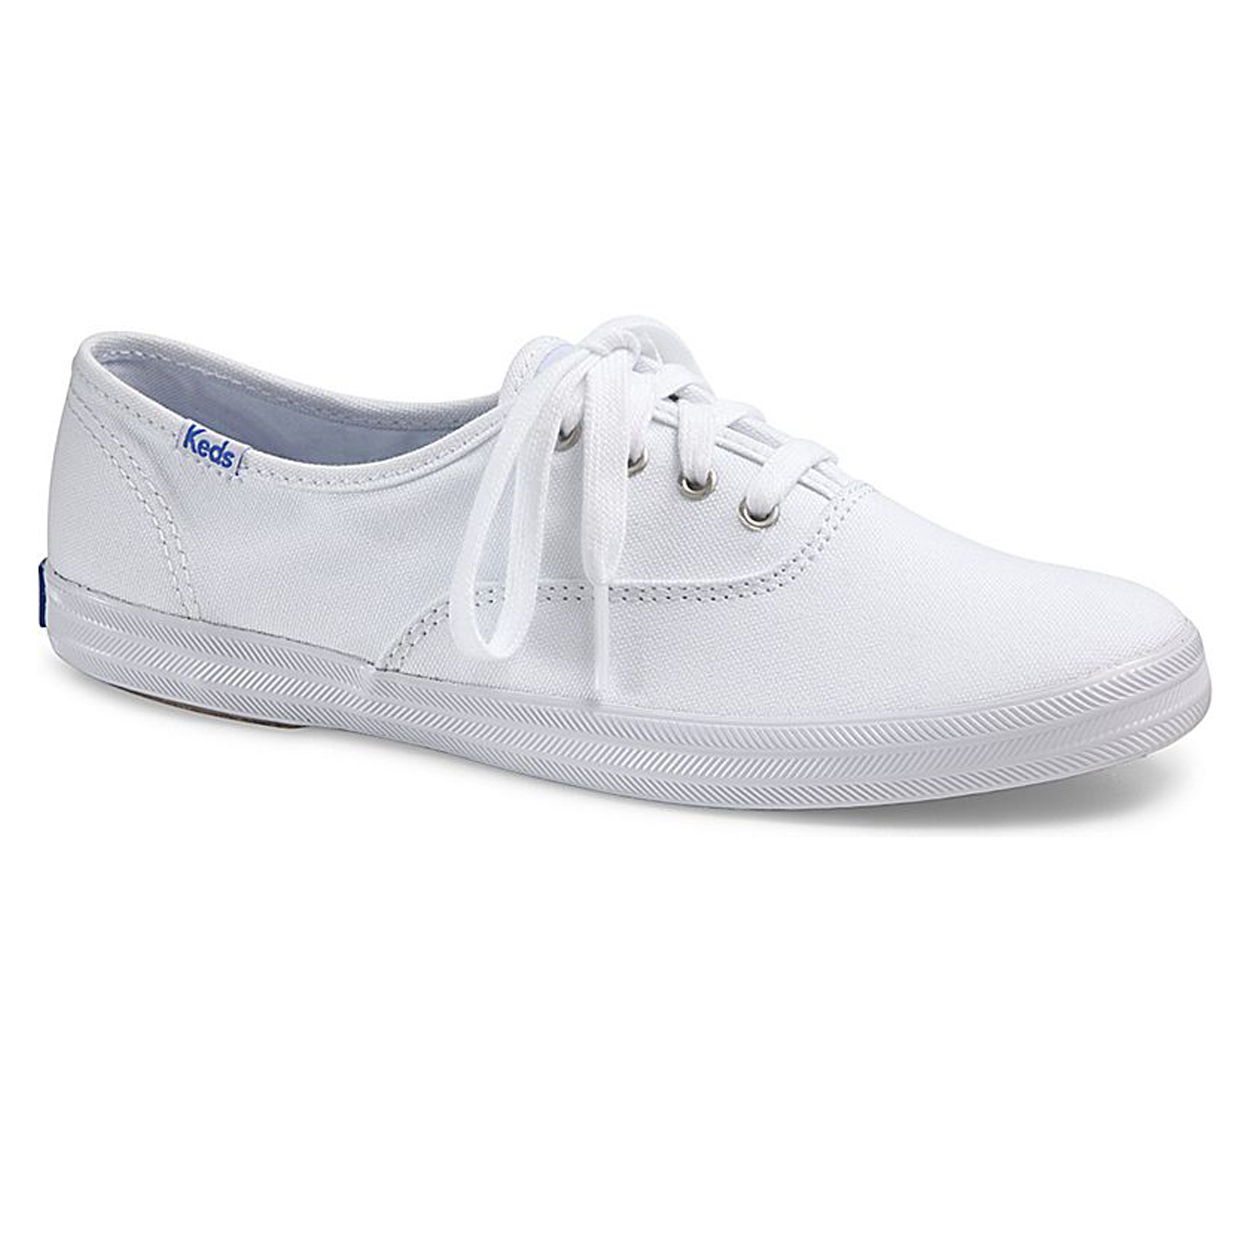 branded shoes vs unbranded shoes Questionnaire on sports shoes - download as word doc (doc), pdf file  how many types of sports shoe brand do you have nike adidas puma air reebok.